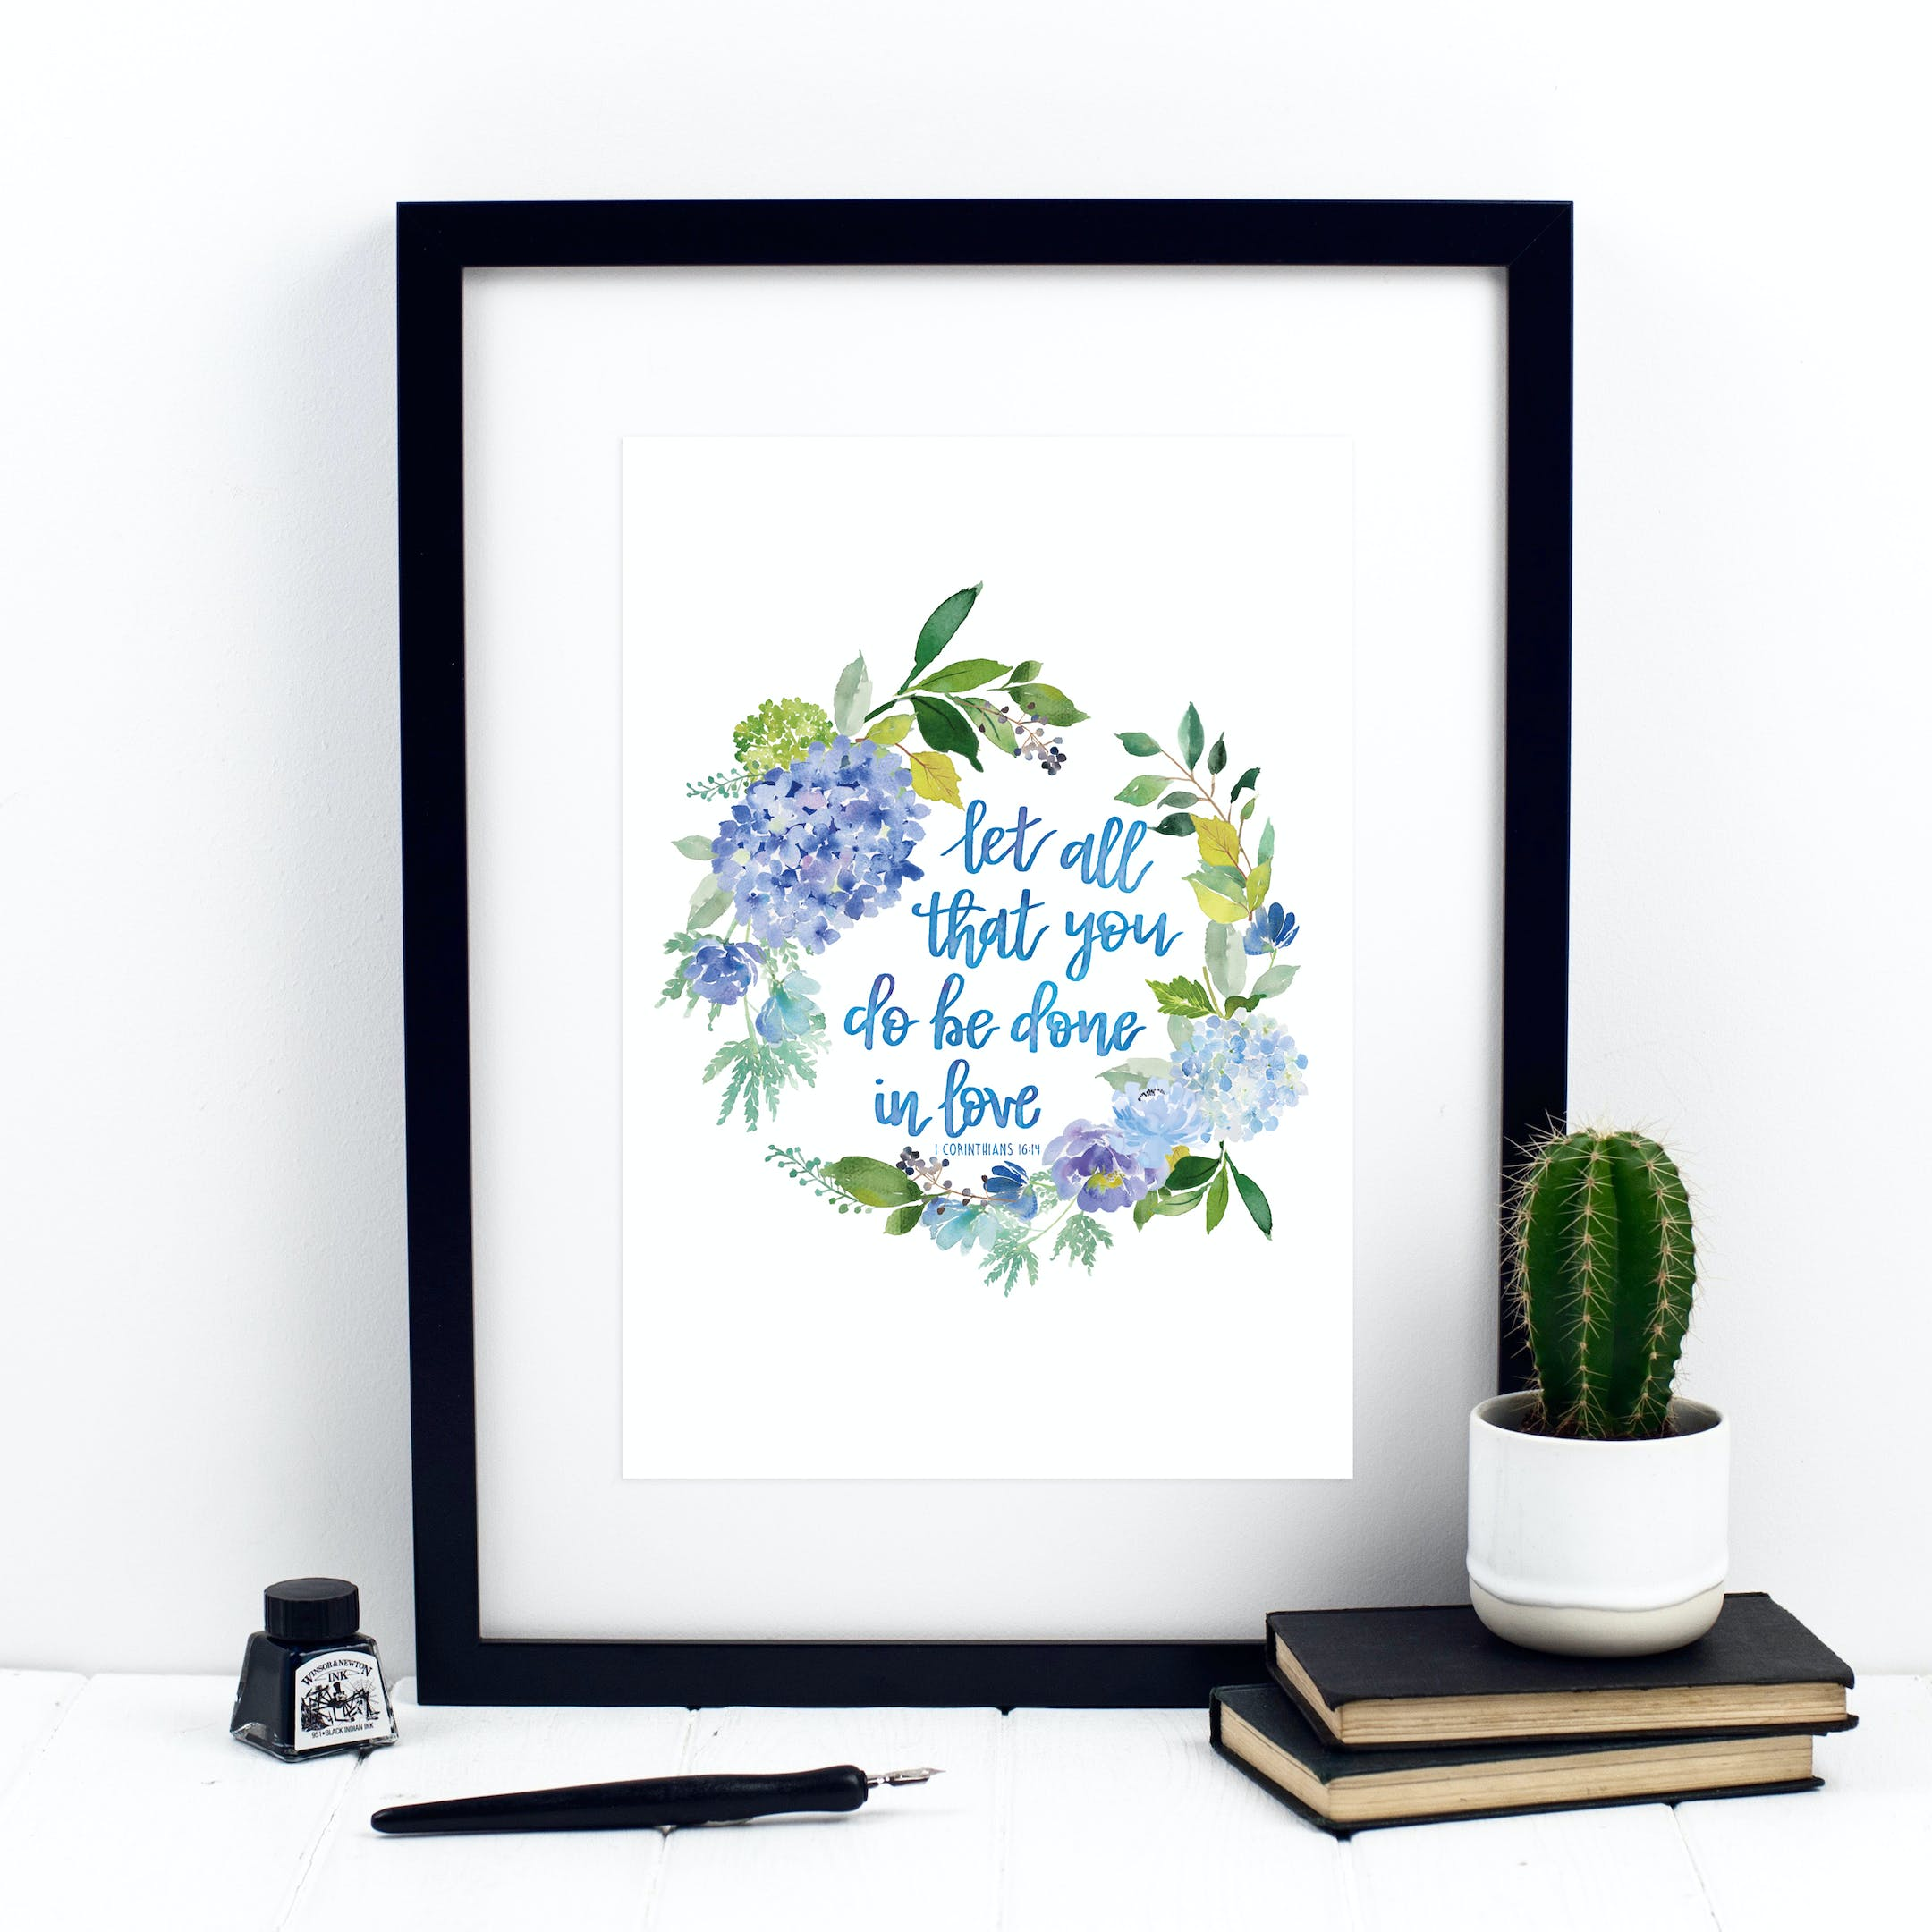 Let All That You Do Be Done In Love - Watercolour Wreath Print - 1 Corinthians 16:14 - Izzy and Pop